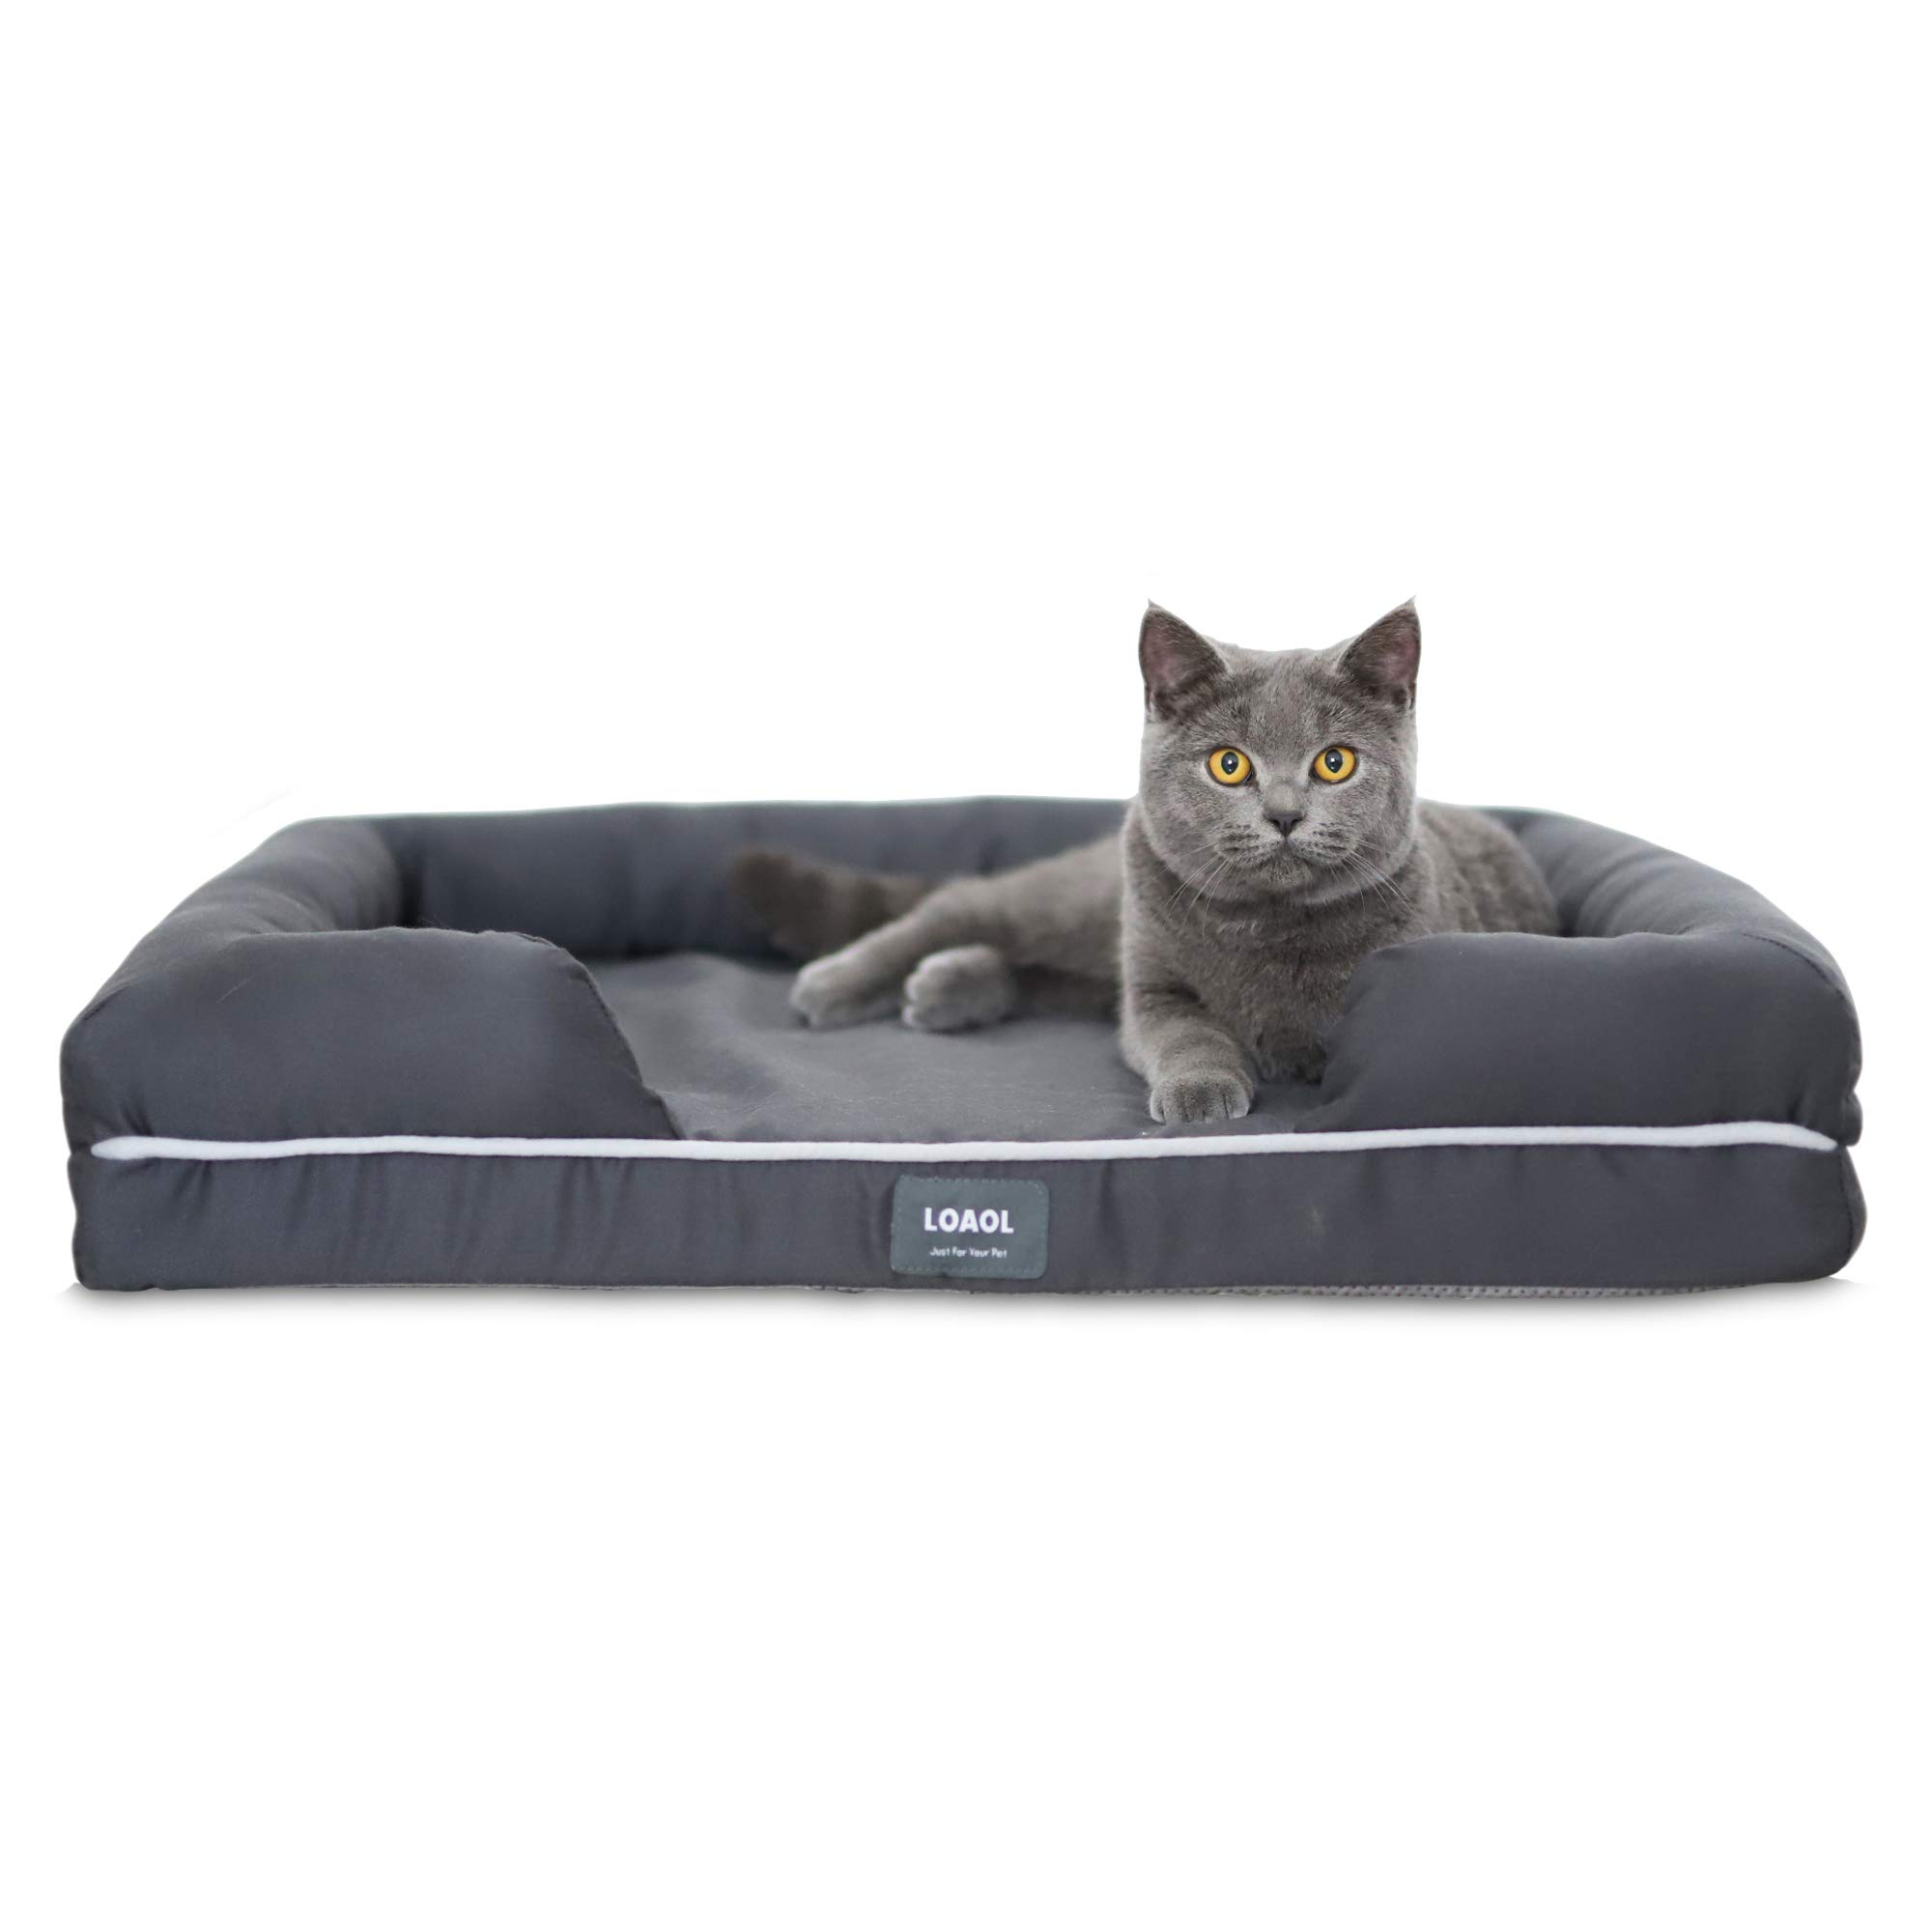 LOAOL 4''Durable Waterproof Memory Foam Pet Bed Mattress Orthopedic Dog Sofa Couch with Changeable Cover (M, Woven Gray)